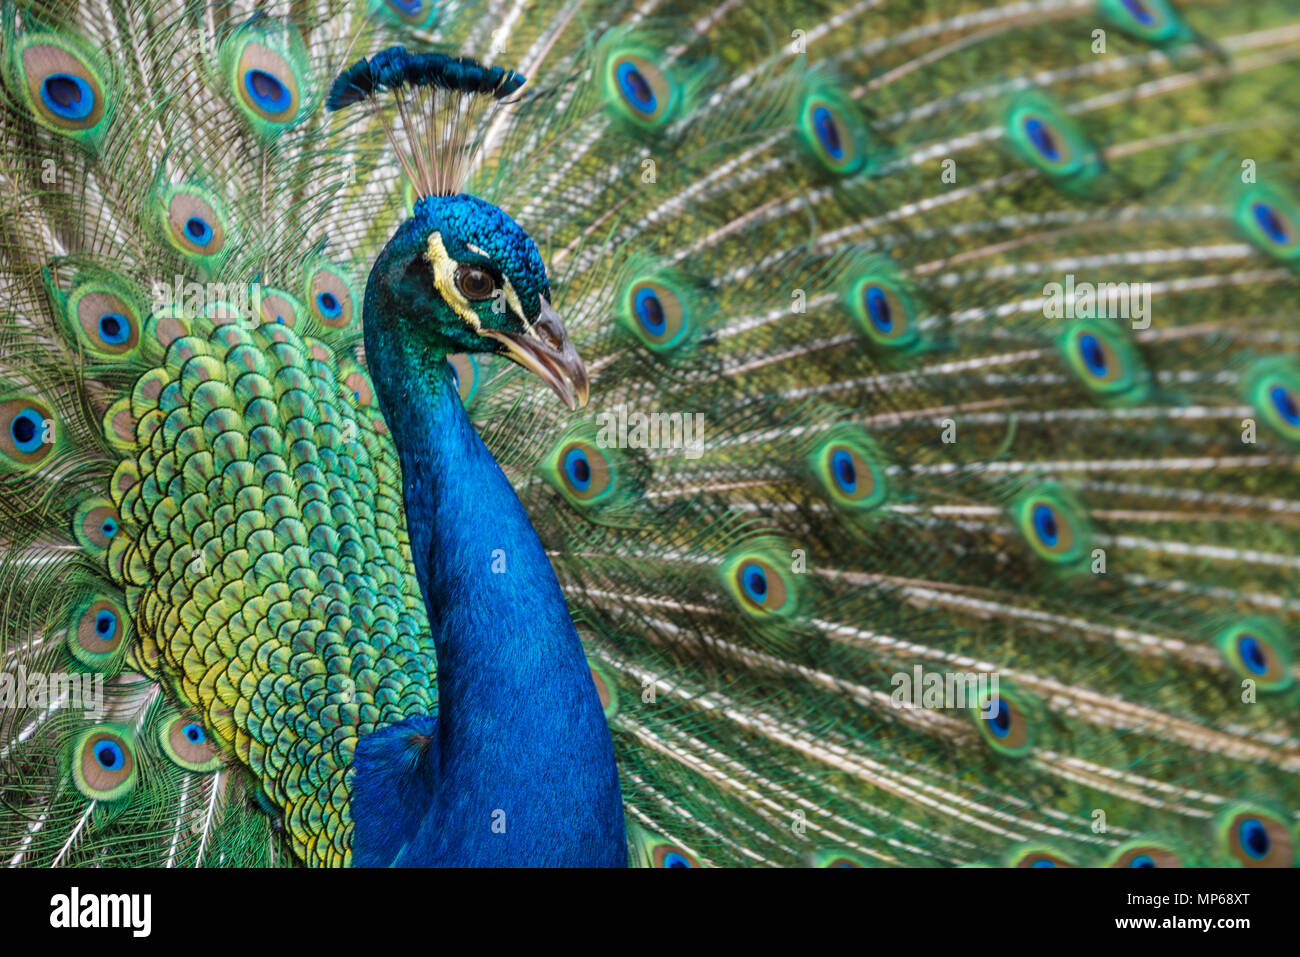 Indian blue peacock with vibrant iridescent plumage in full display at Ponce de Leon's Fountain of Youth Archaeological Park in St. Augustine, Florida. - Stock Image